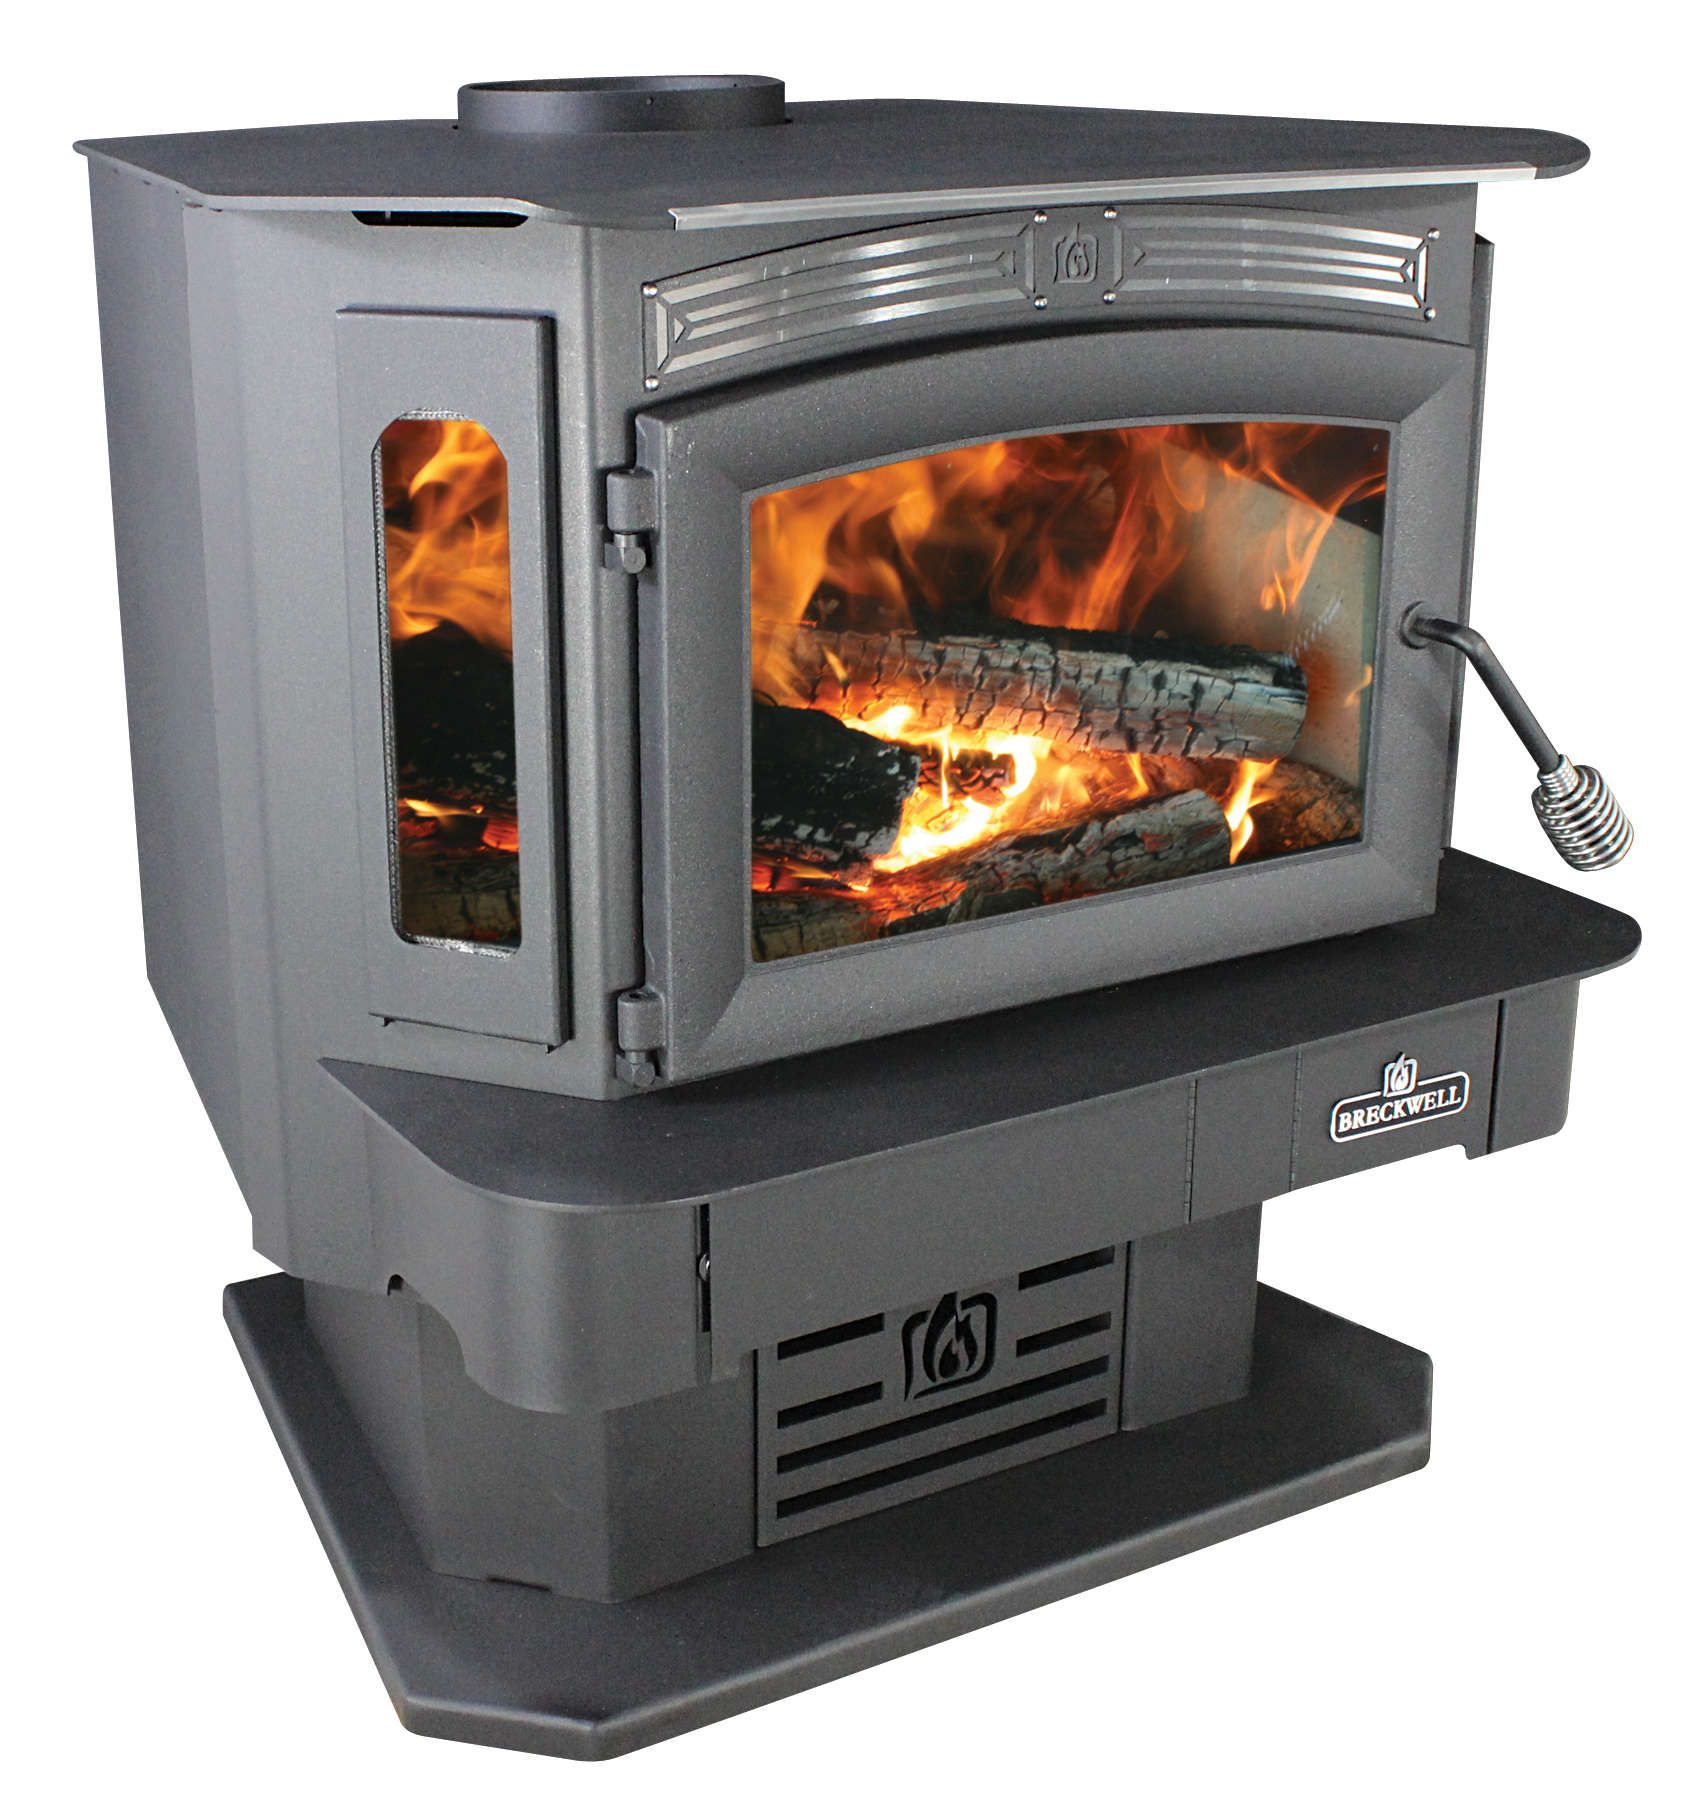 SW940P angle left wood burning stove repair & replacement parts online buck stove clayton wood furnace wiring diagram at reclaimingppi.co